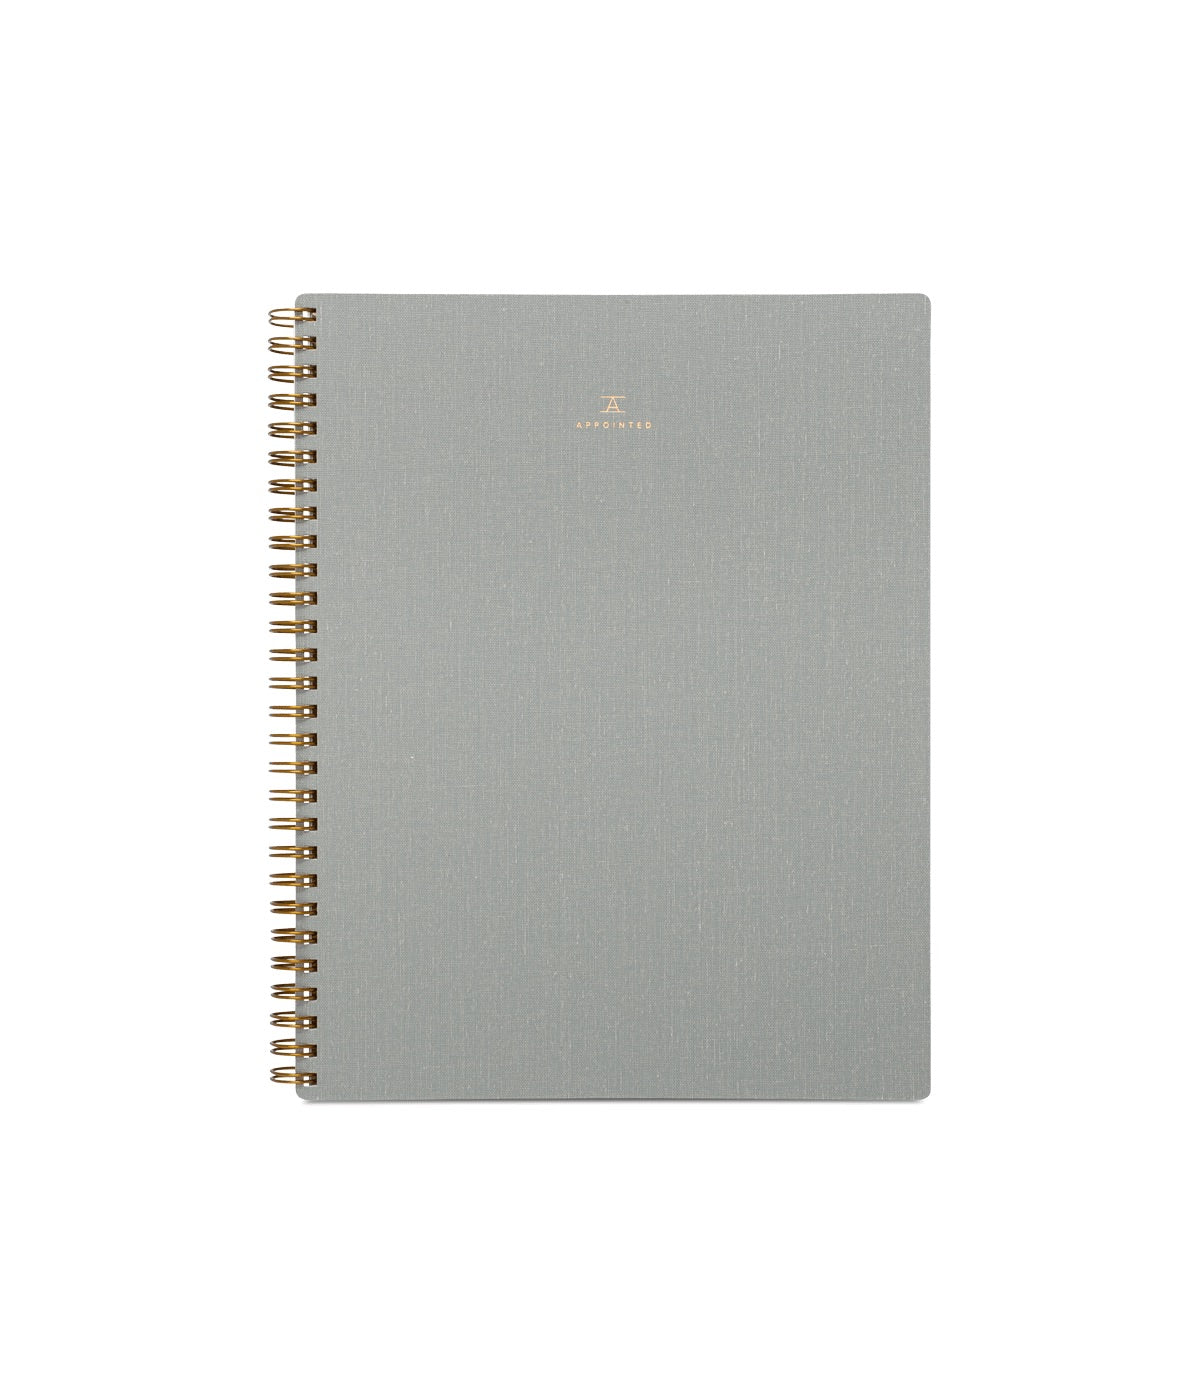 appointed workbook dove grey dot grid